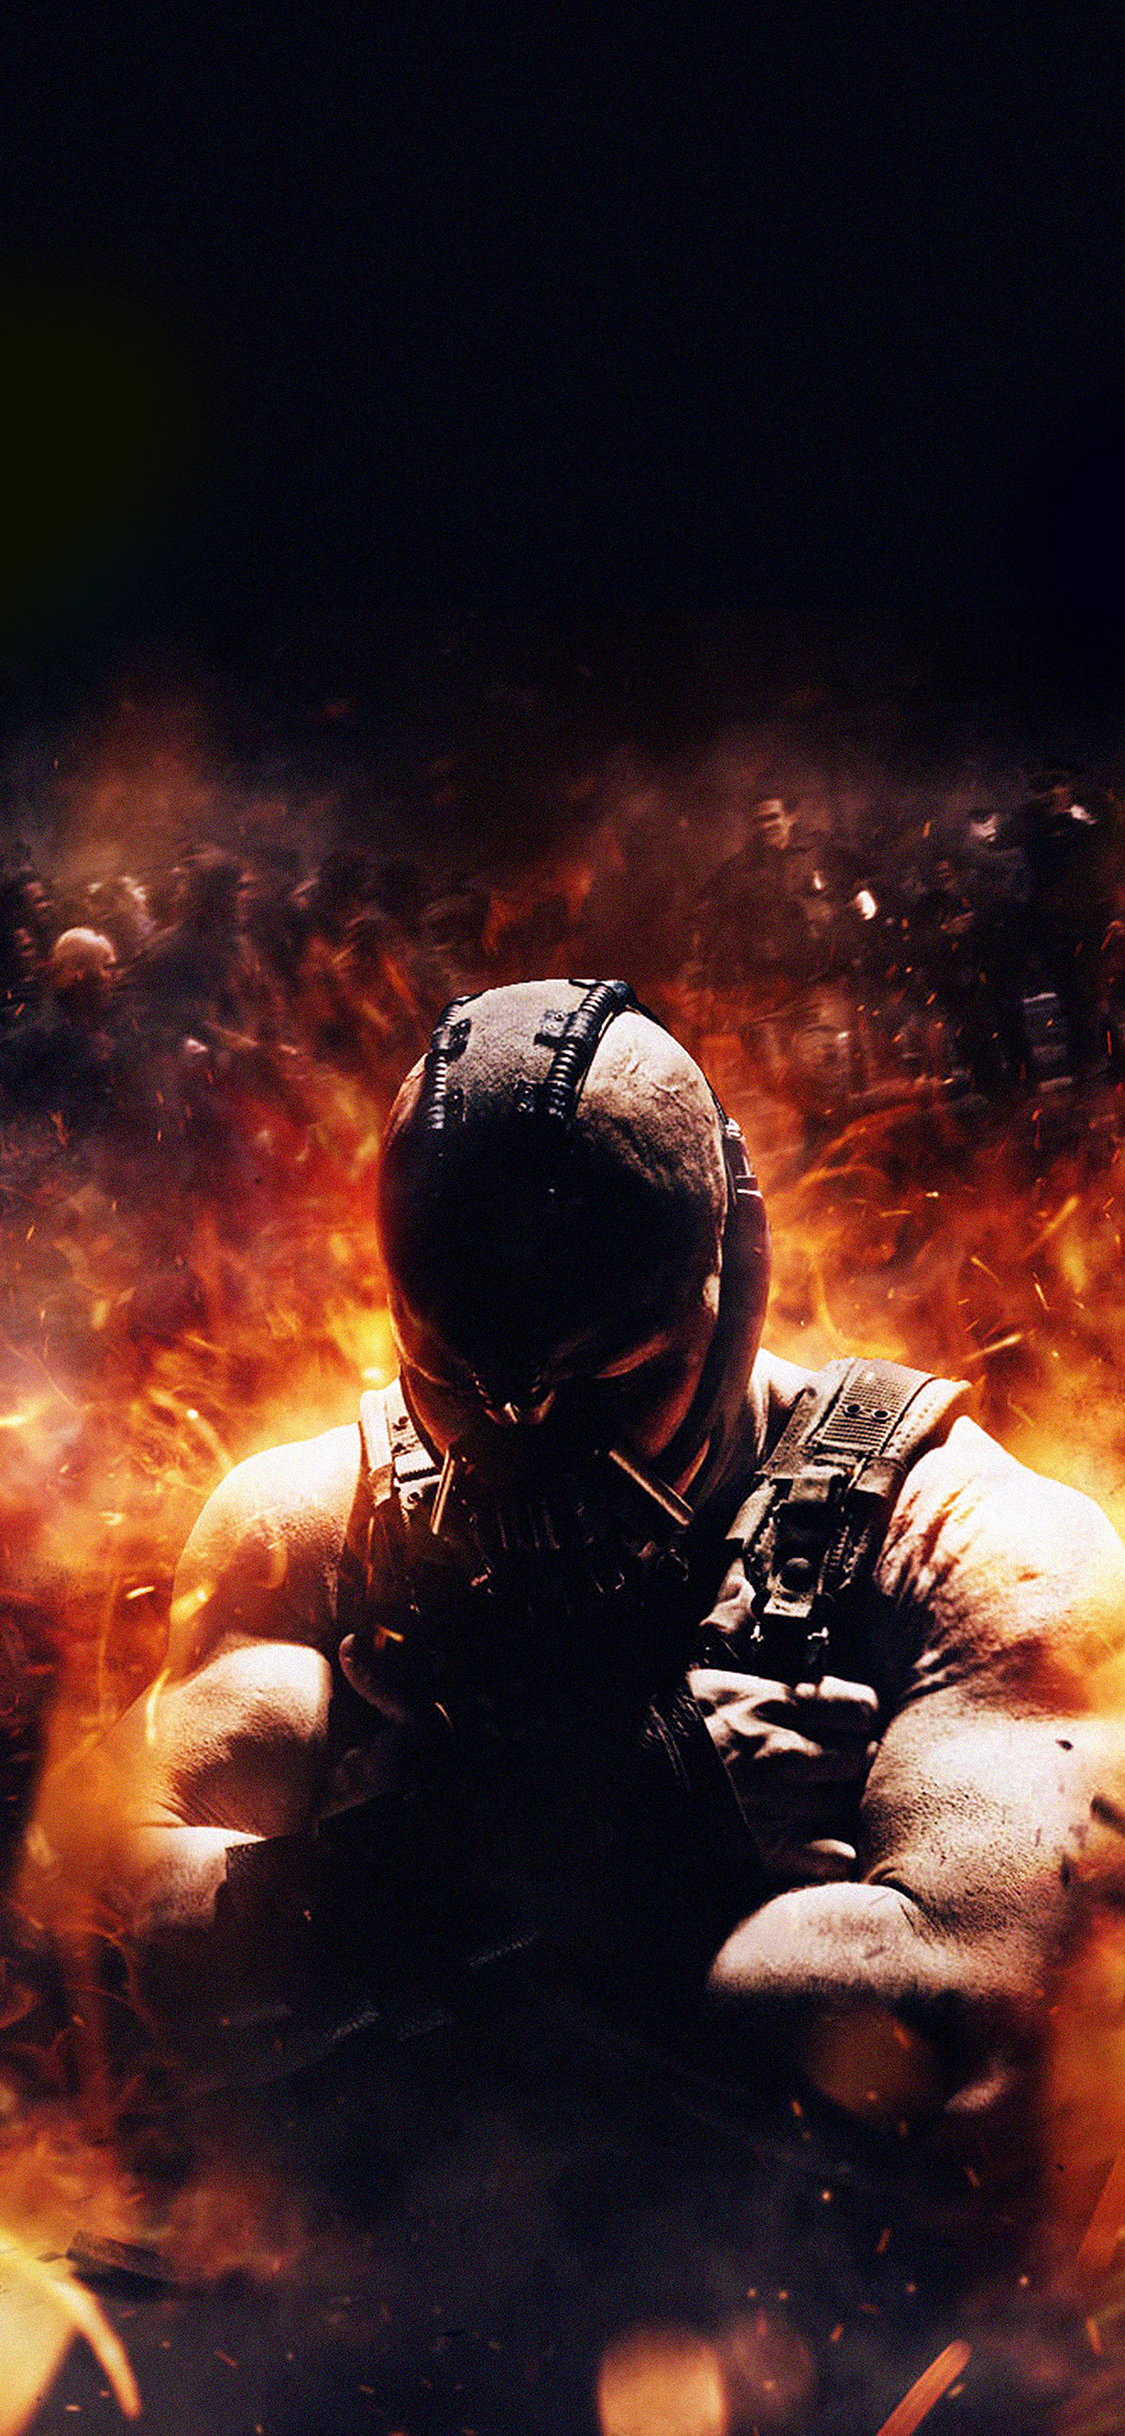 iPhoneXpapers.com-Apple-iPhone-wallpaper-ac32-wallpaper-dark-knight-rises-bane-fire